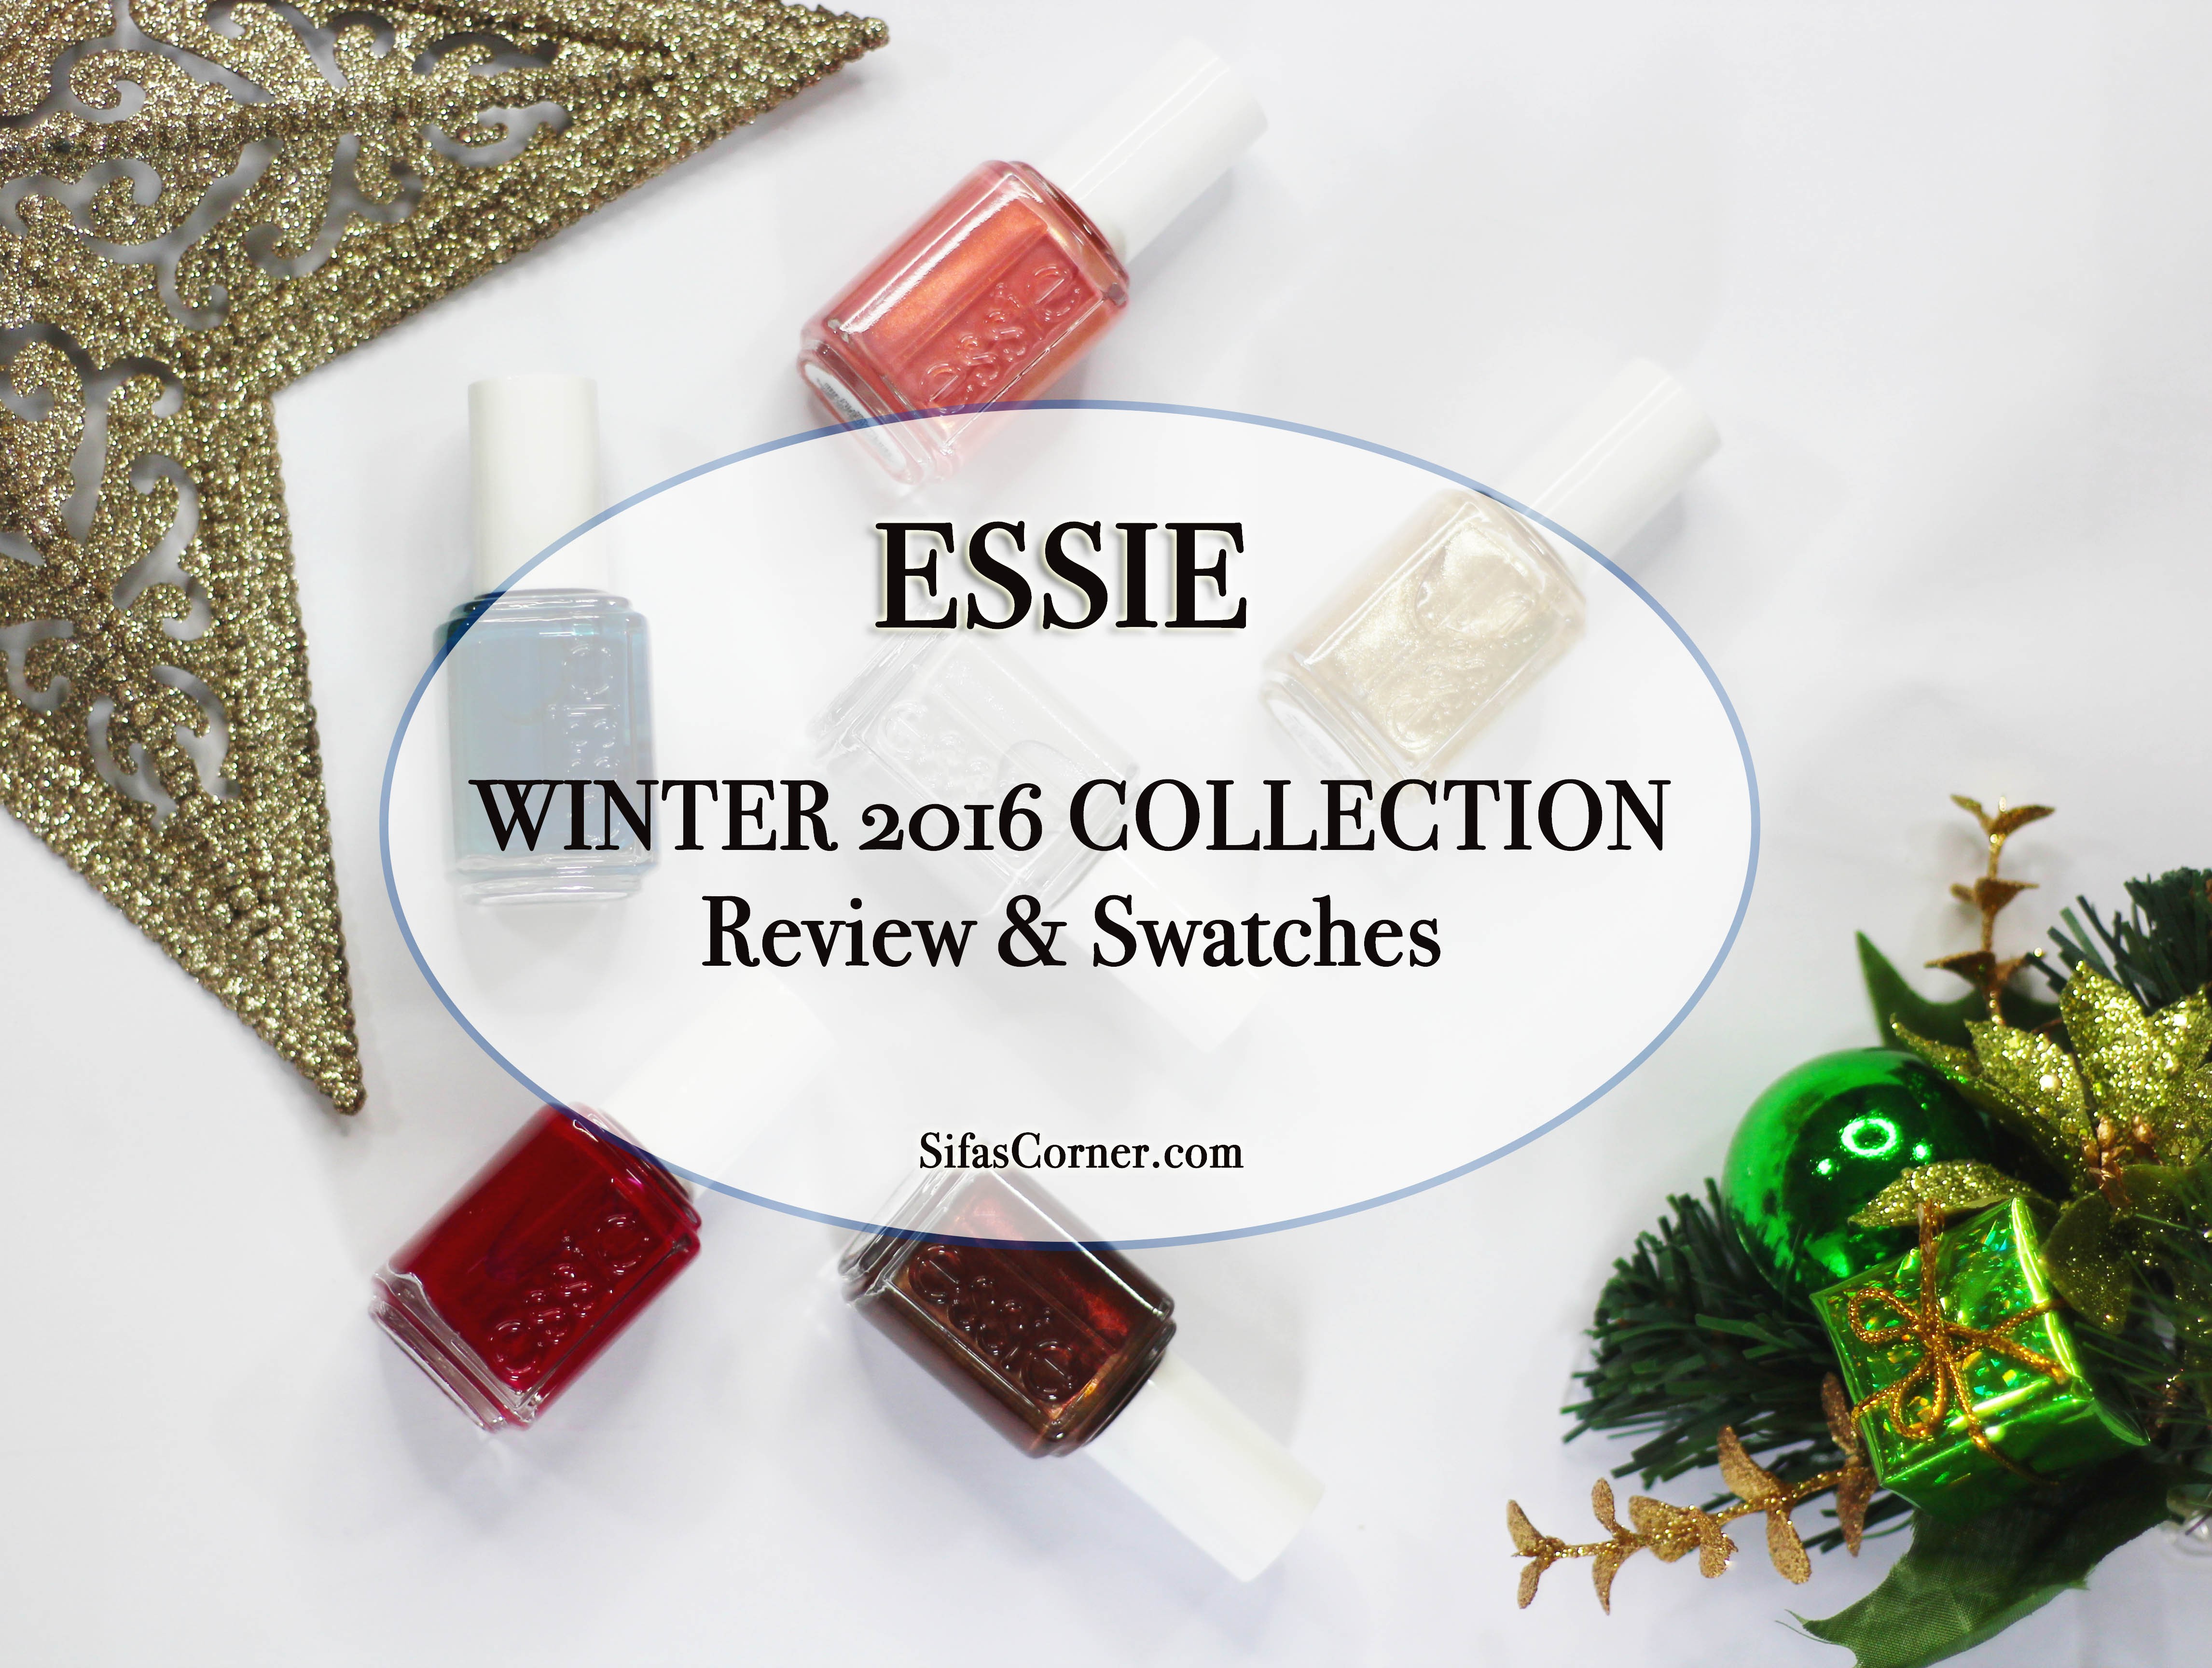 ESSIE 2016 Winter Collection: Review & Swatches